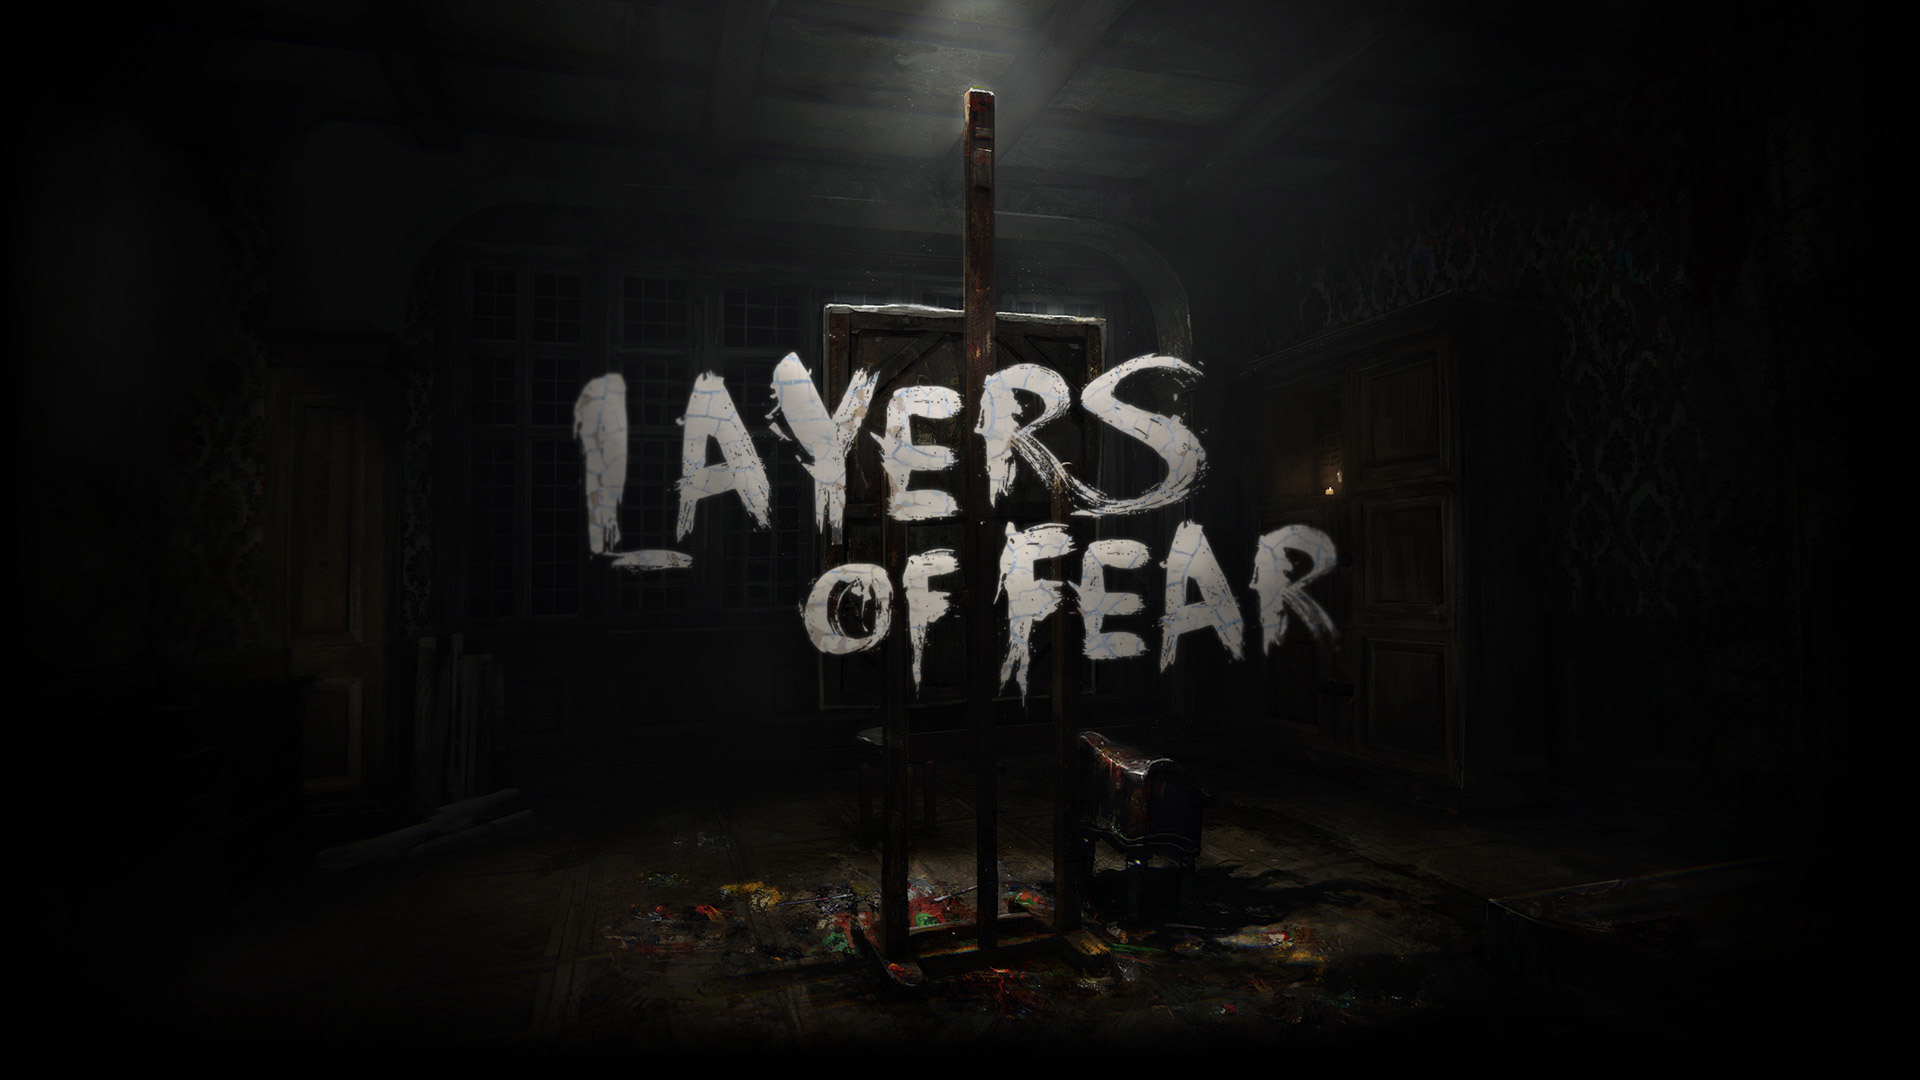 Free Layers of Fear Wallpaper in 1920x1080